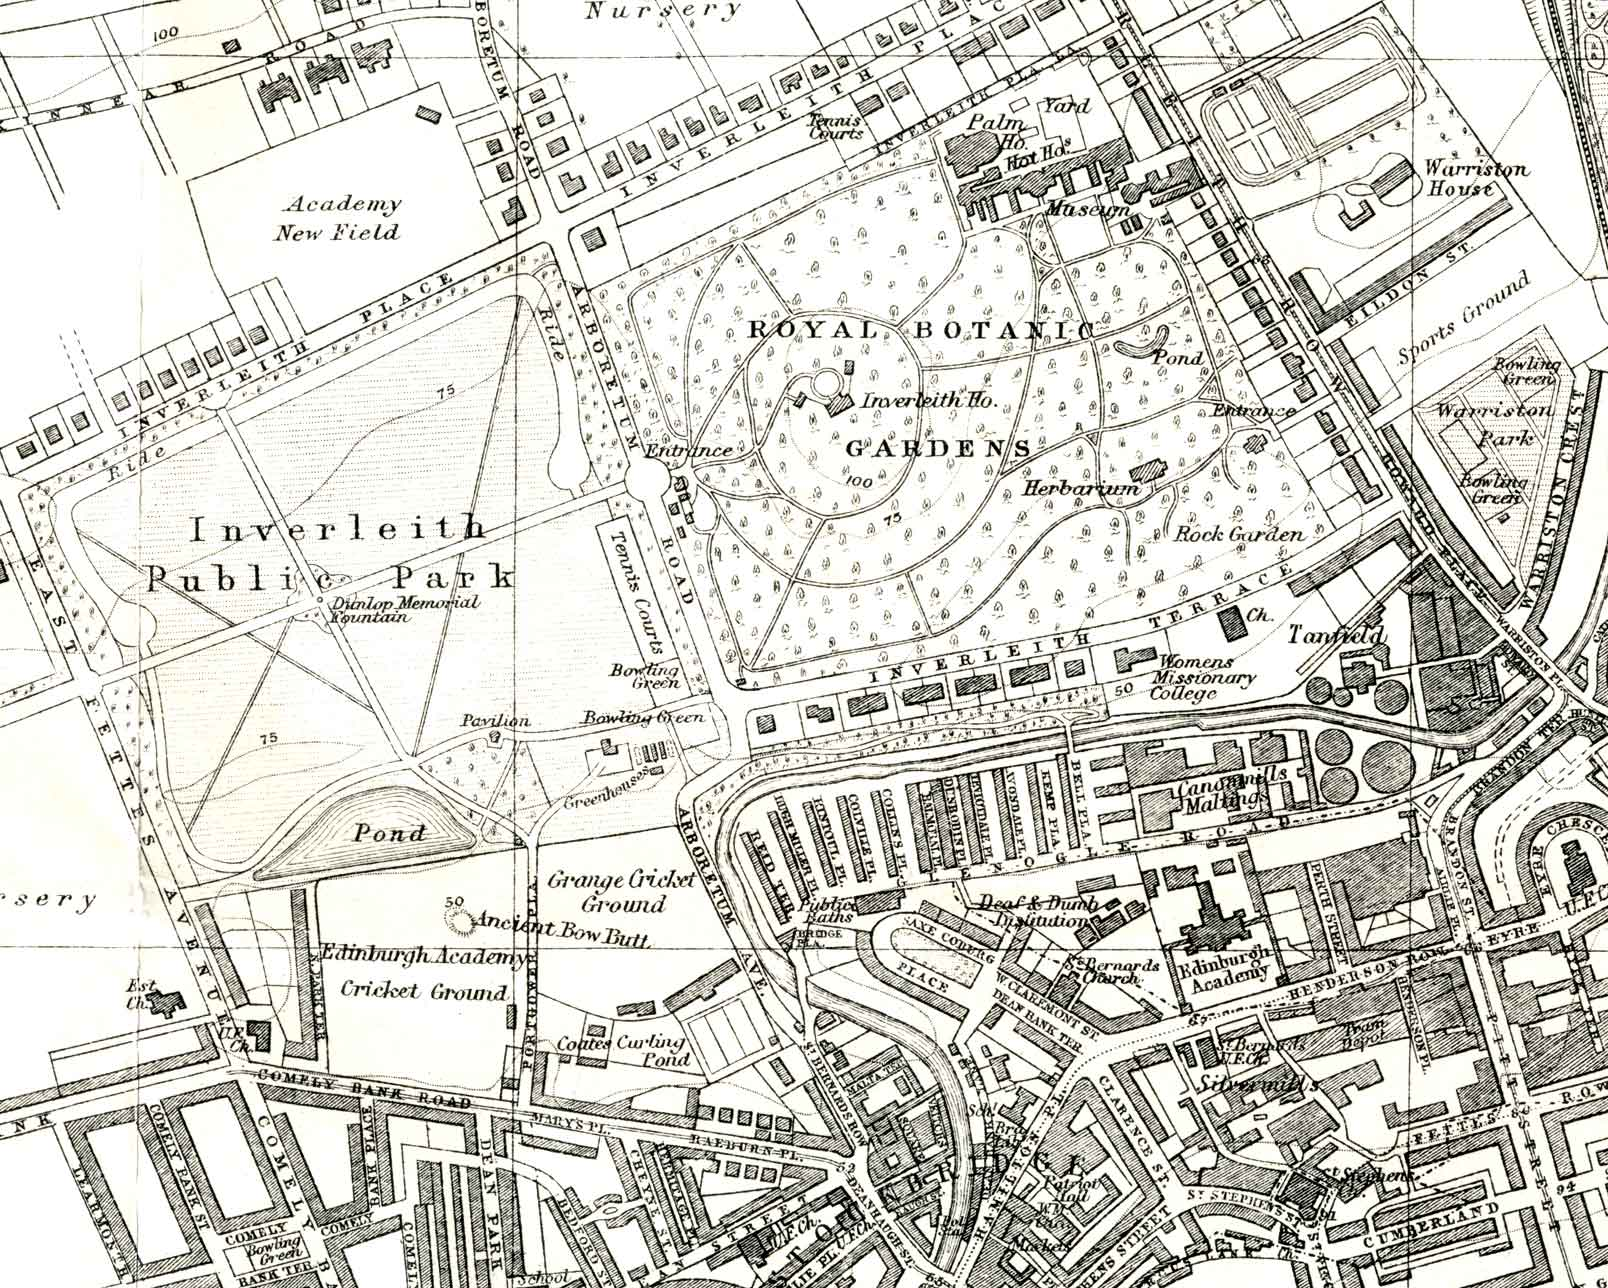 Edinburgh and Leith map, 1925  -  Inverleith section  -  Enlarged